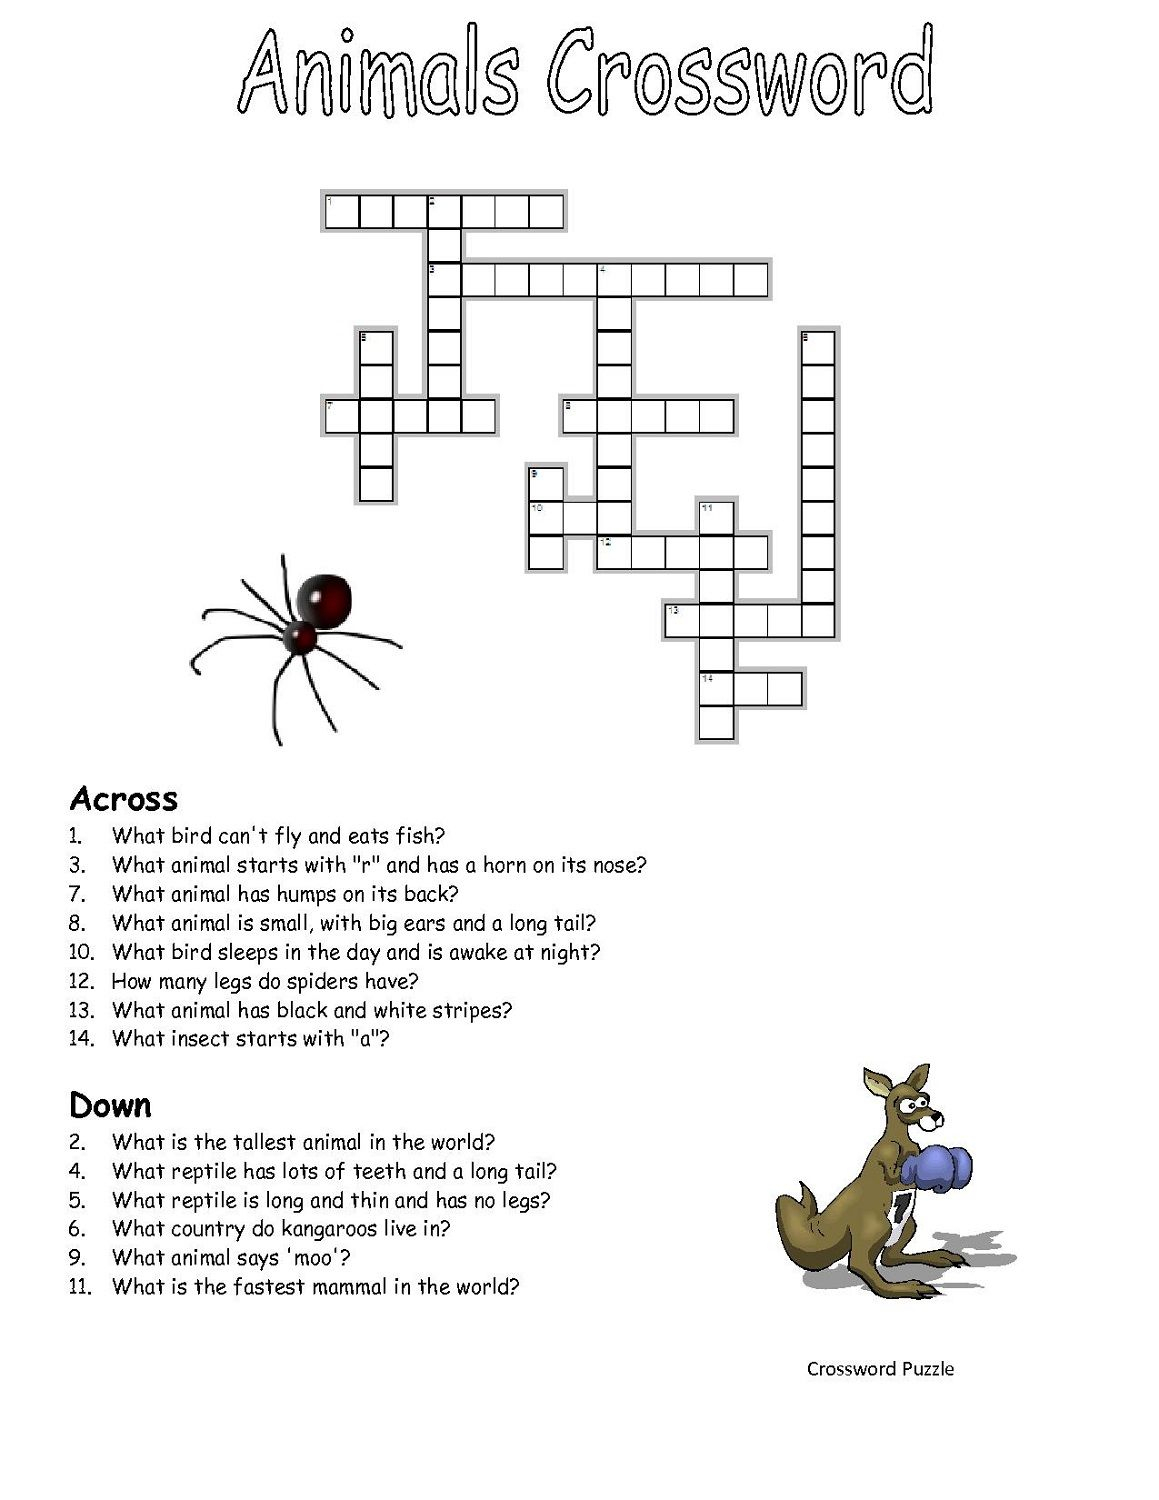 Crossword-Puzzles-Kids-Animal | Work It | Crossword, Puzzle - Printable Crossword Puzzles About Animals